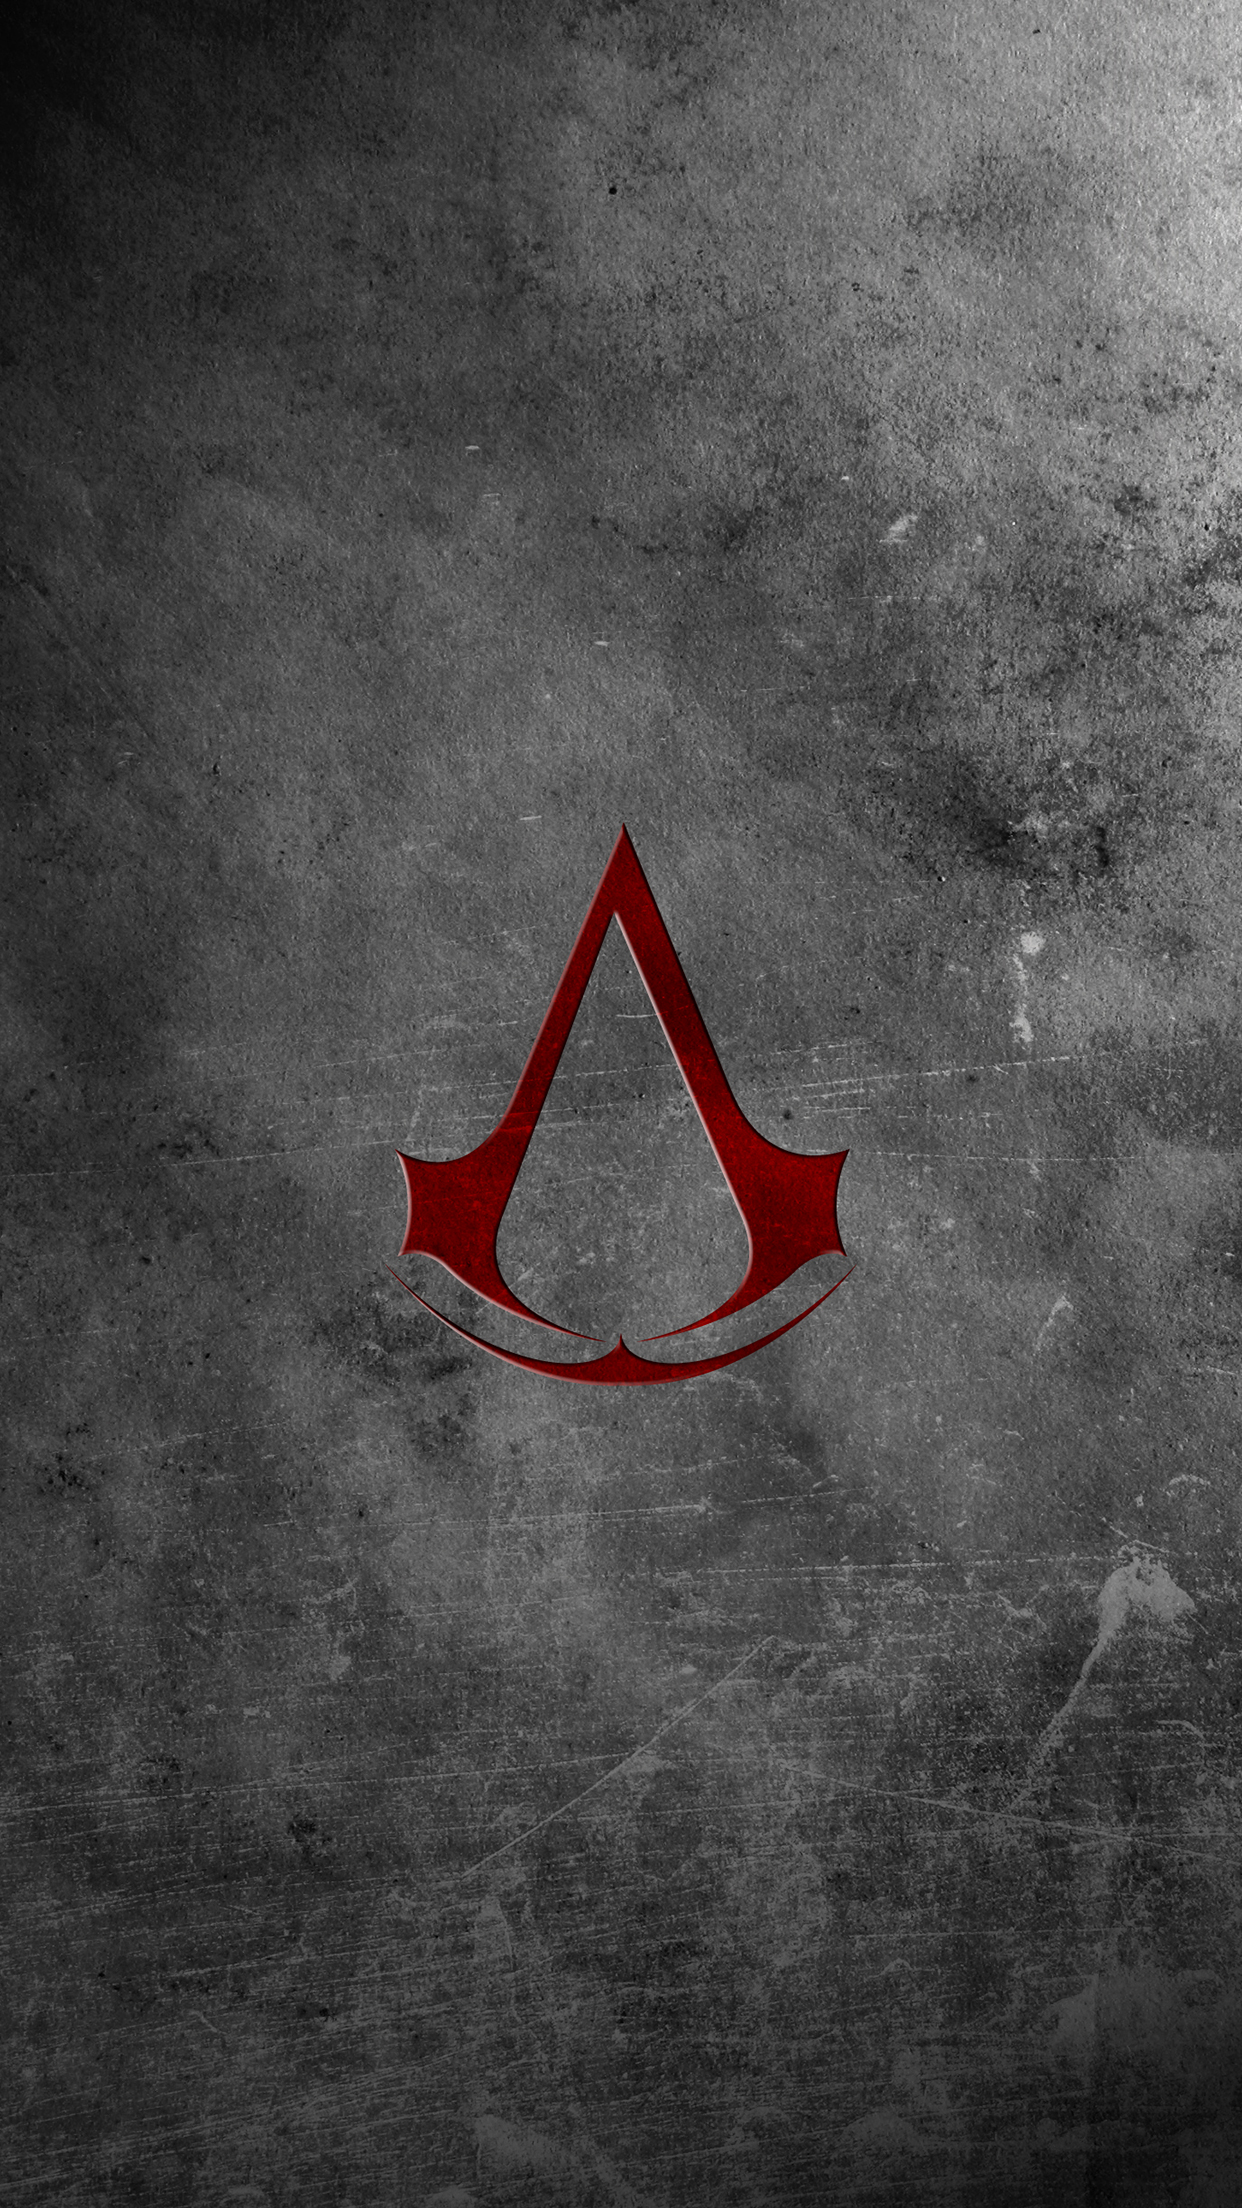 Assassin S Creed Logo Wallpaper For Iphone 11 Pro Max X 8 7 6